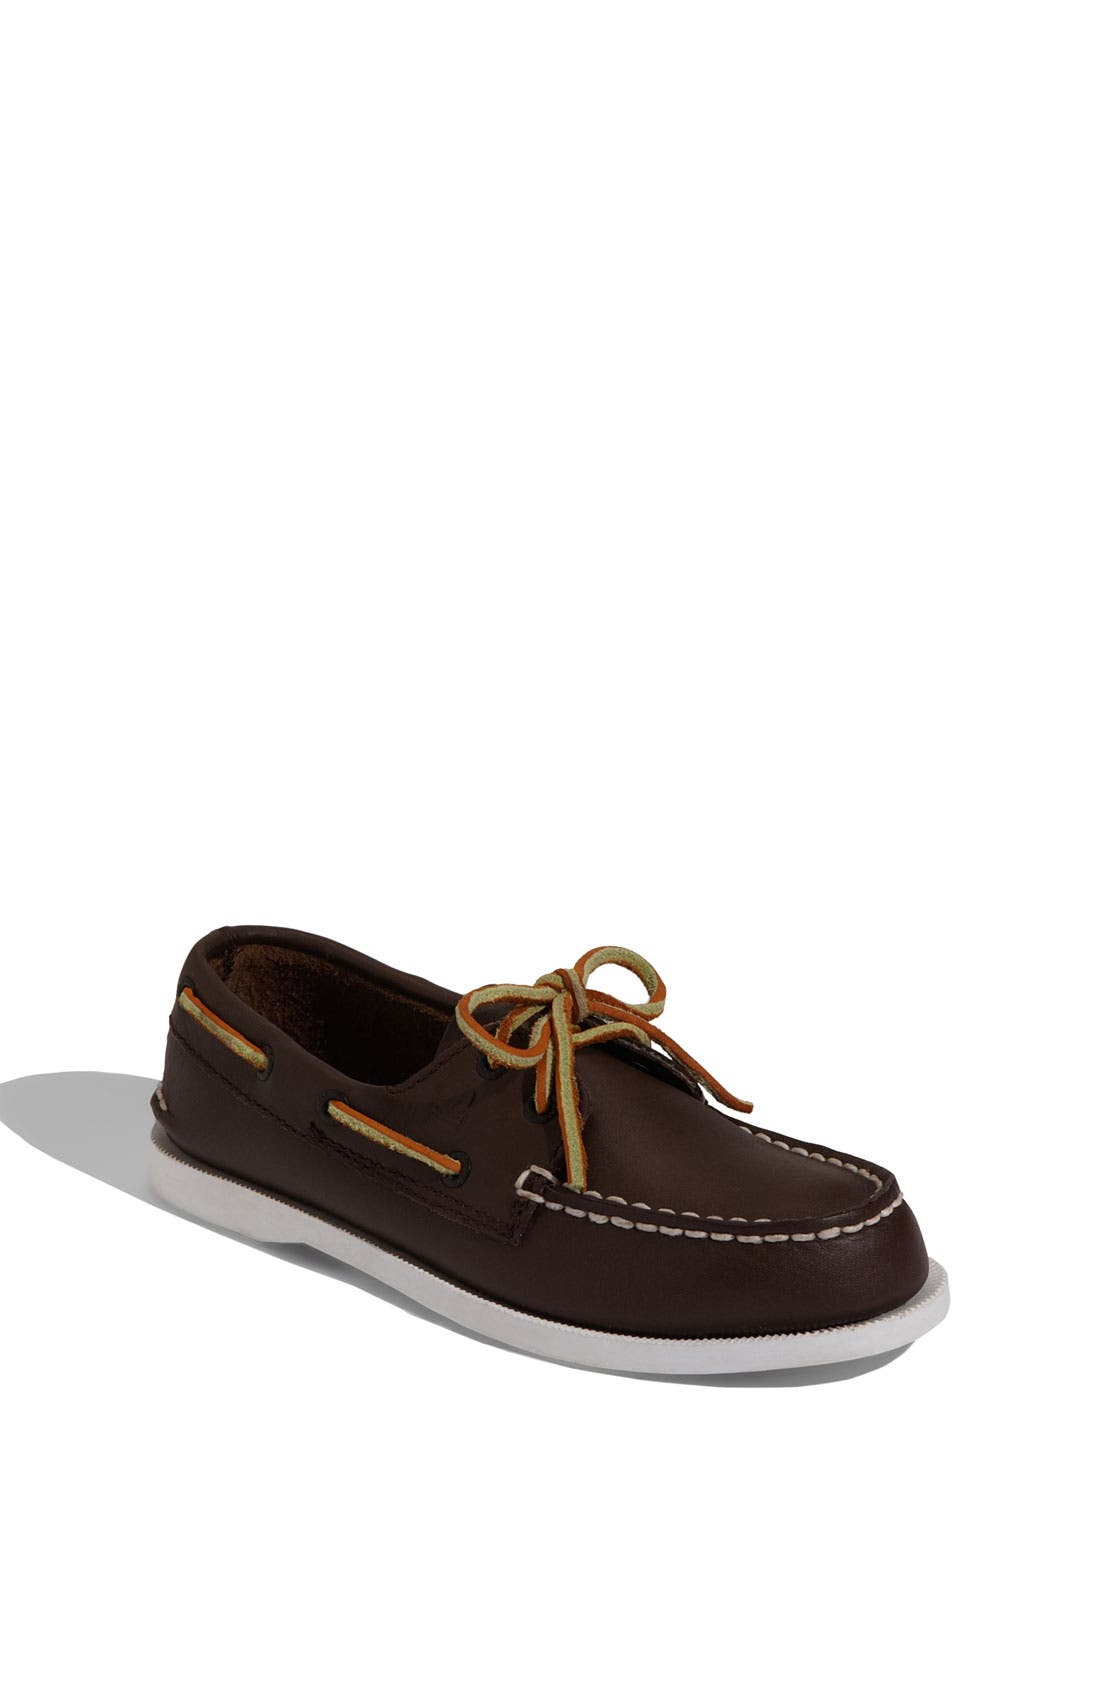 SPERRY KIDS,                             'Authentic Original' Boat Shoe,                             Main thumbnail 1, color,                             BROWN LEATHER